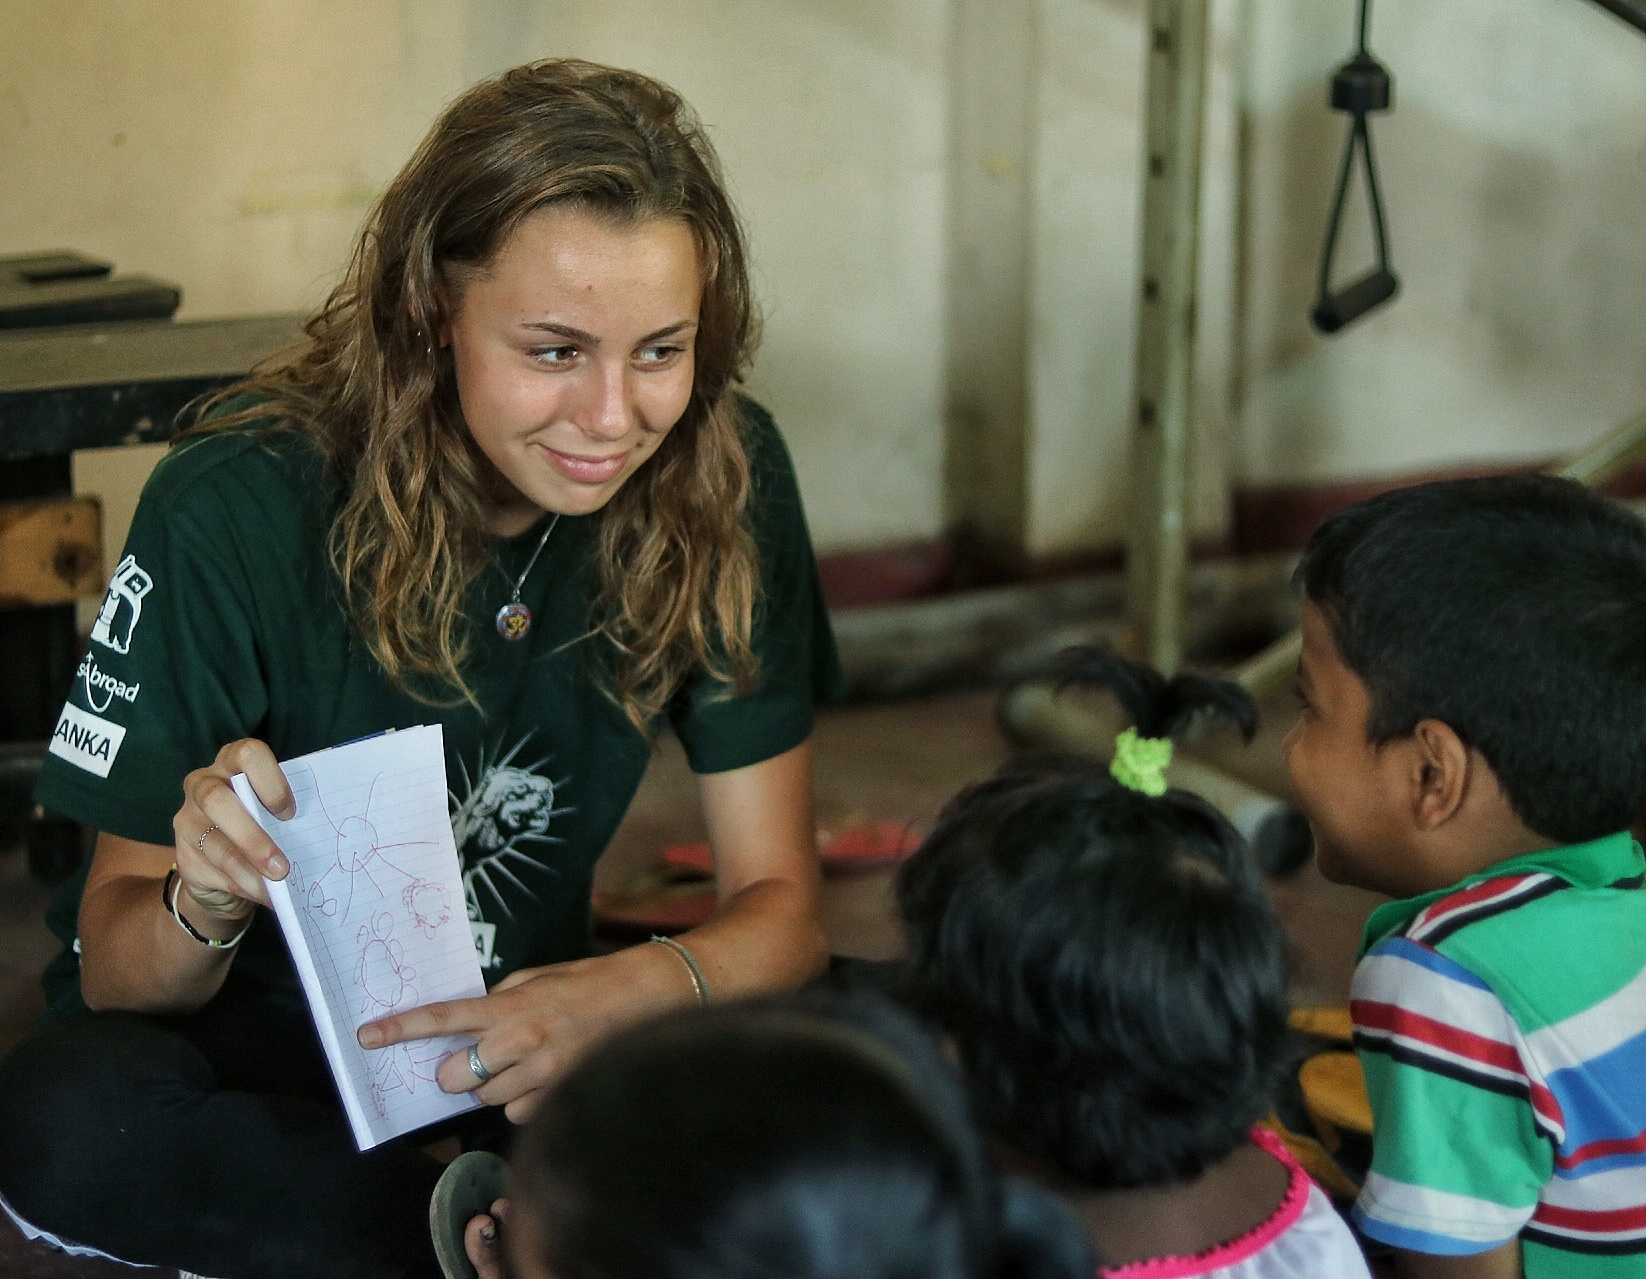 Gap Year Program - Projects Abroad: Gap Year Volunteering Abroad  3